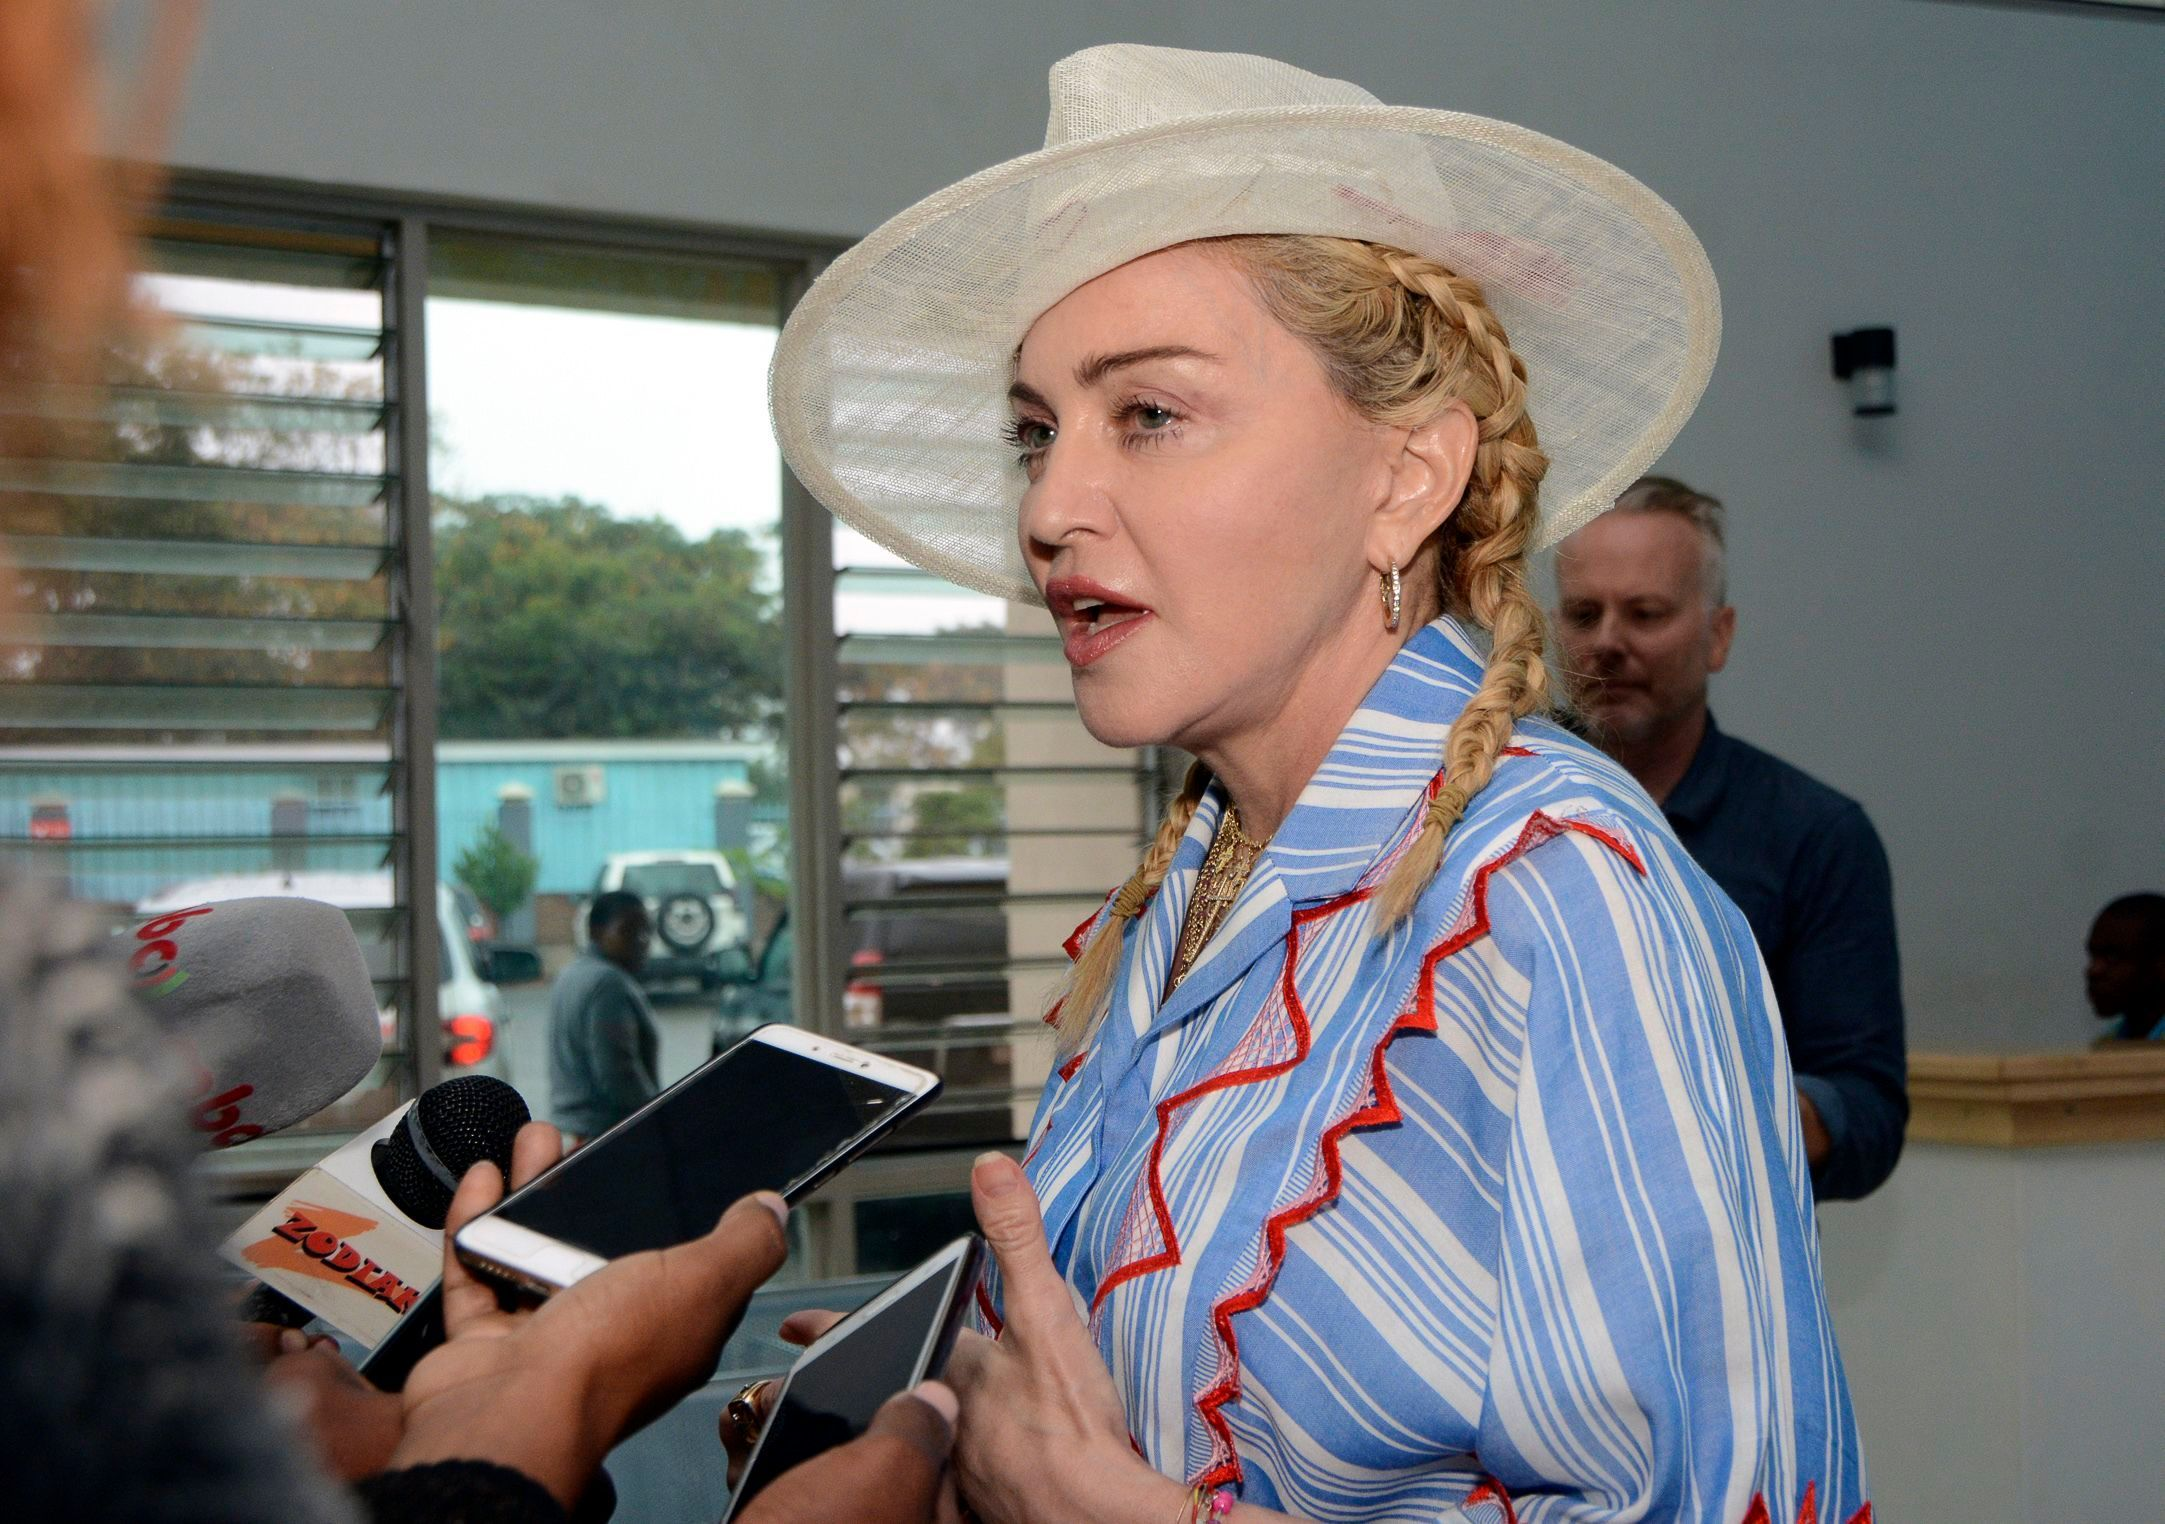 Madonna participates in a press conference in celebration of the first anniversary of the Mercy James Children's Hospital at Queen Elizabeth Central Hospital in Blantyre, Malawi, on July 16, 2018.